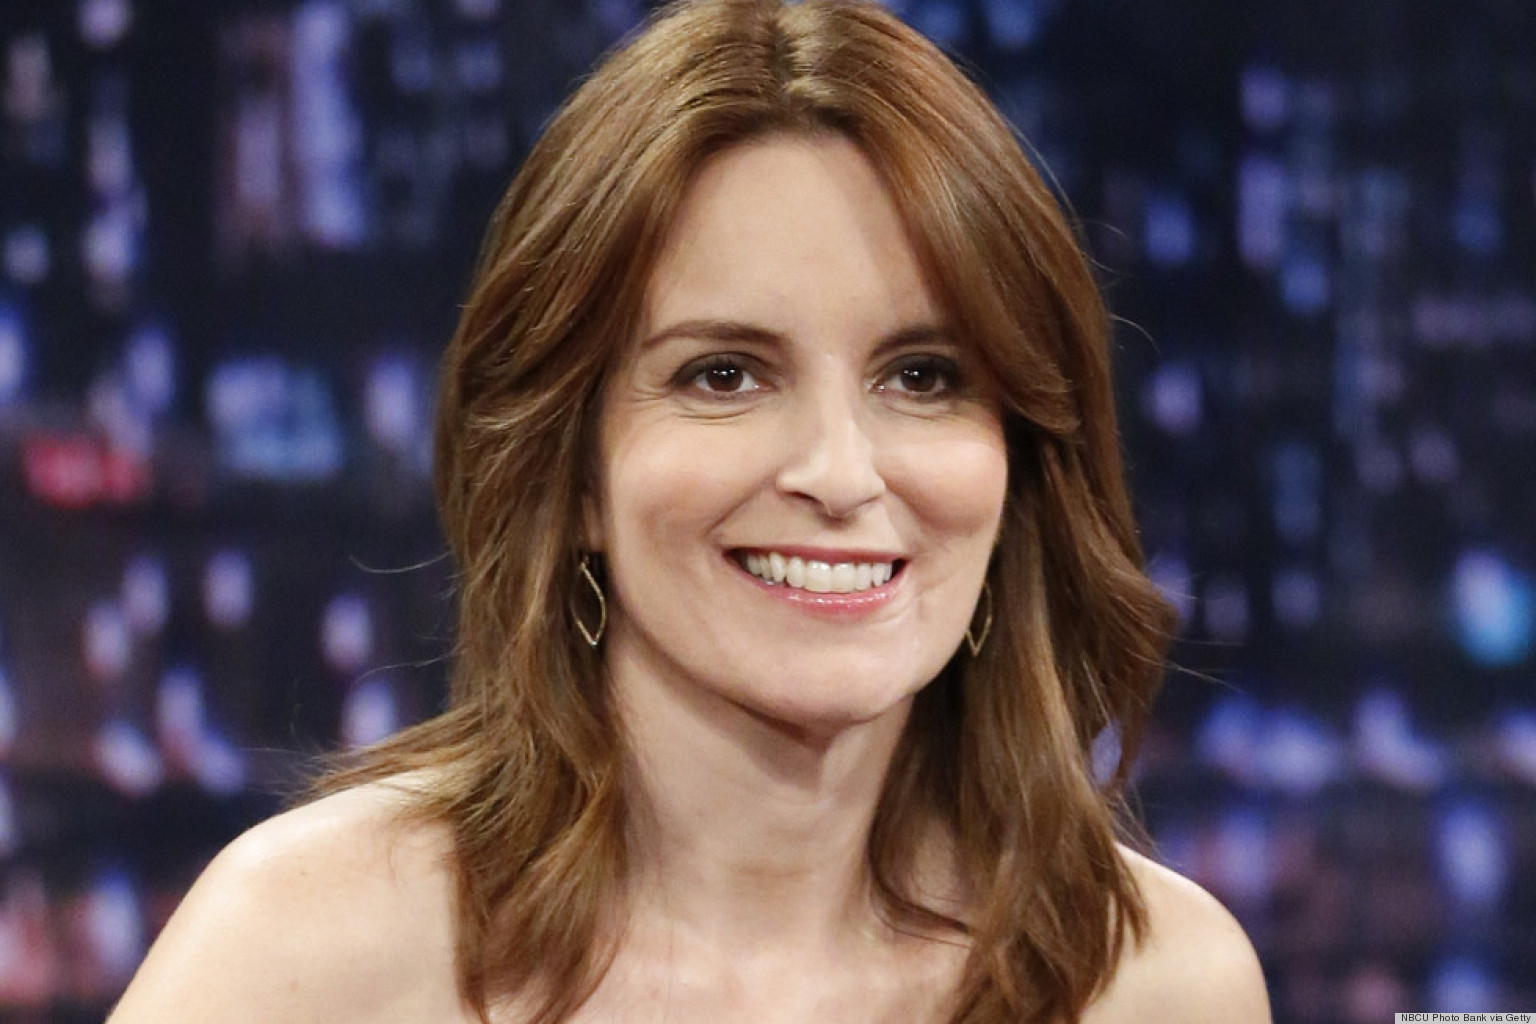 2. This teacher who really blew it with Tina Fey: